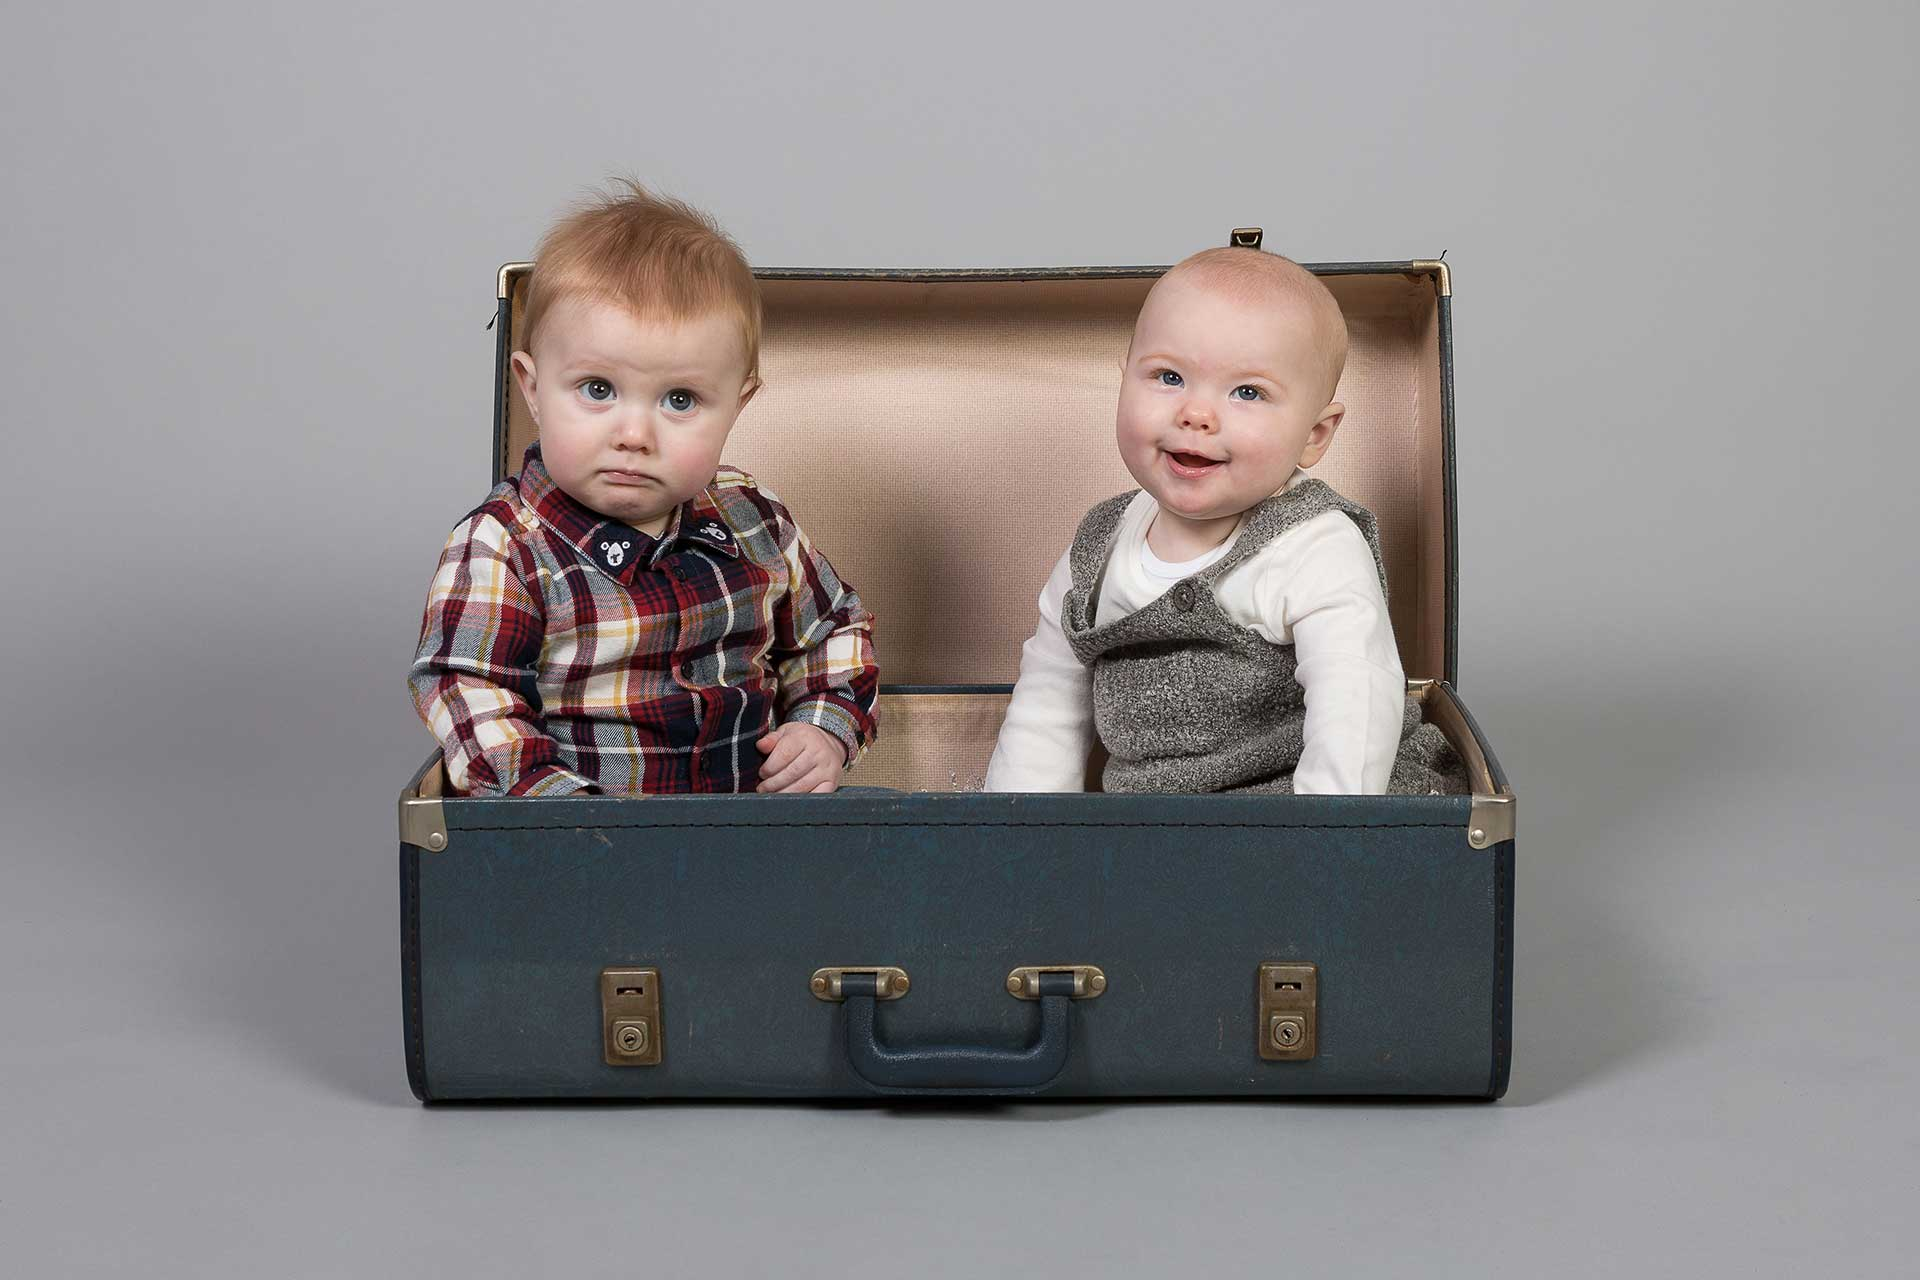 babes-in-a-suitcase